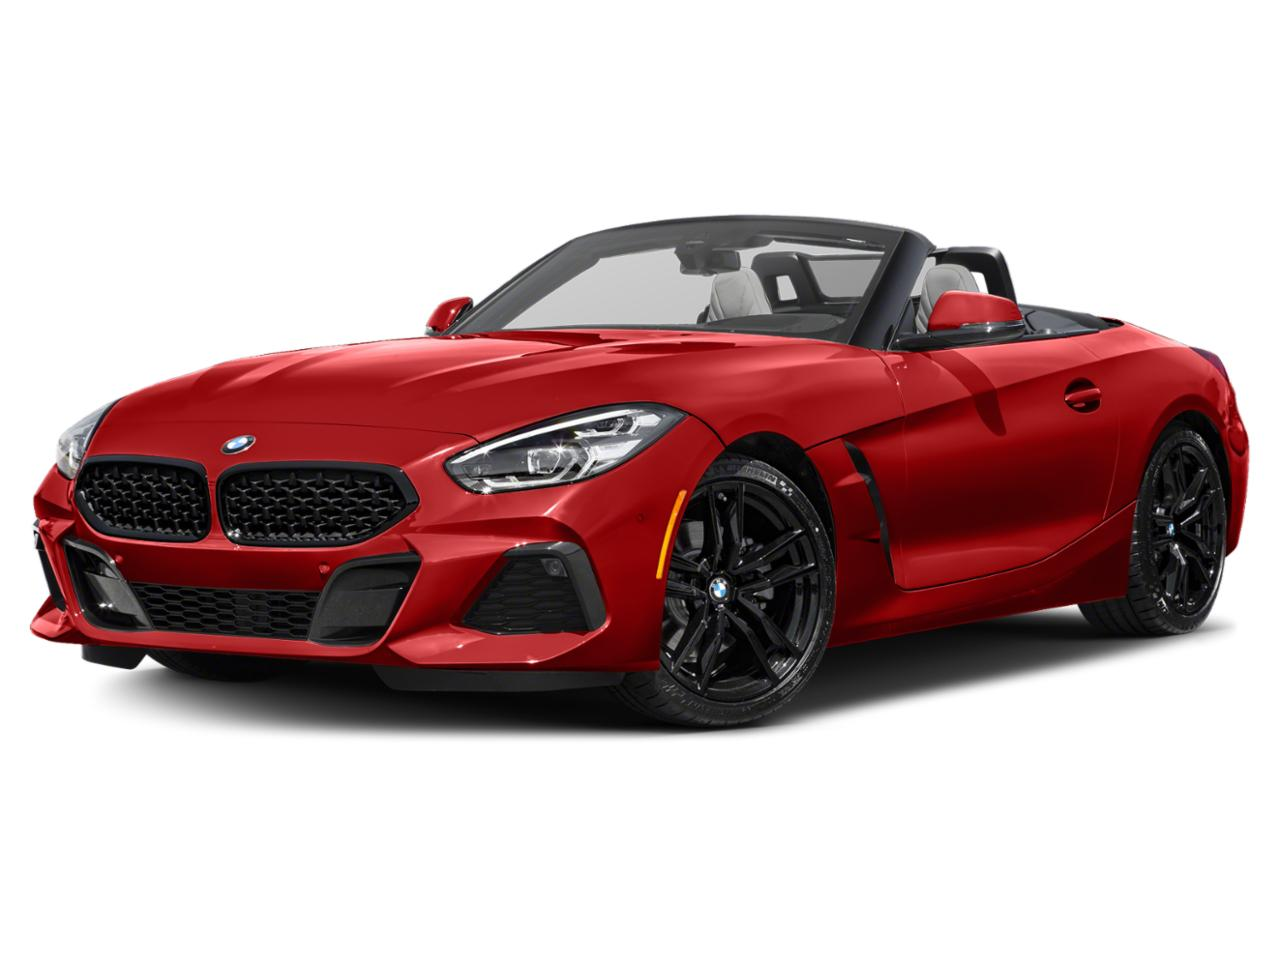 2019 BMW Z4 sDrive30i Vehicle Photo in Smyrna, GA 30080